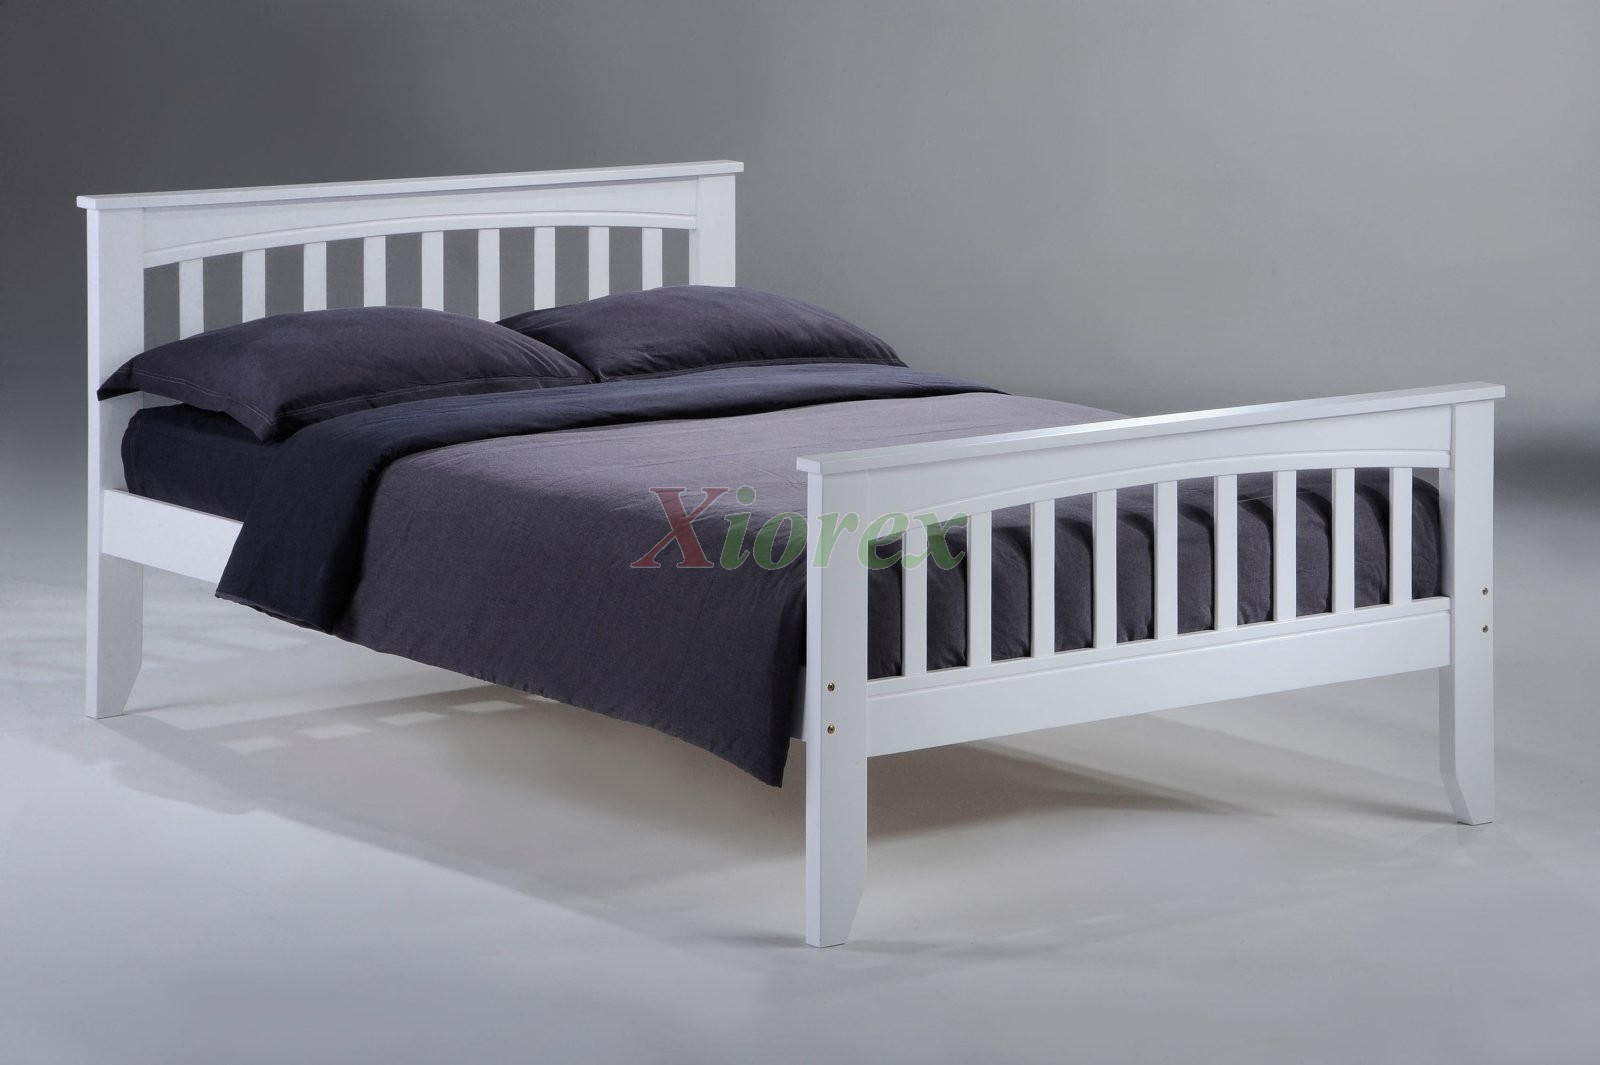 Attractive ... Bed Full Double White Bed For Night Day Sasparilla Bed Set Xiorex ...